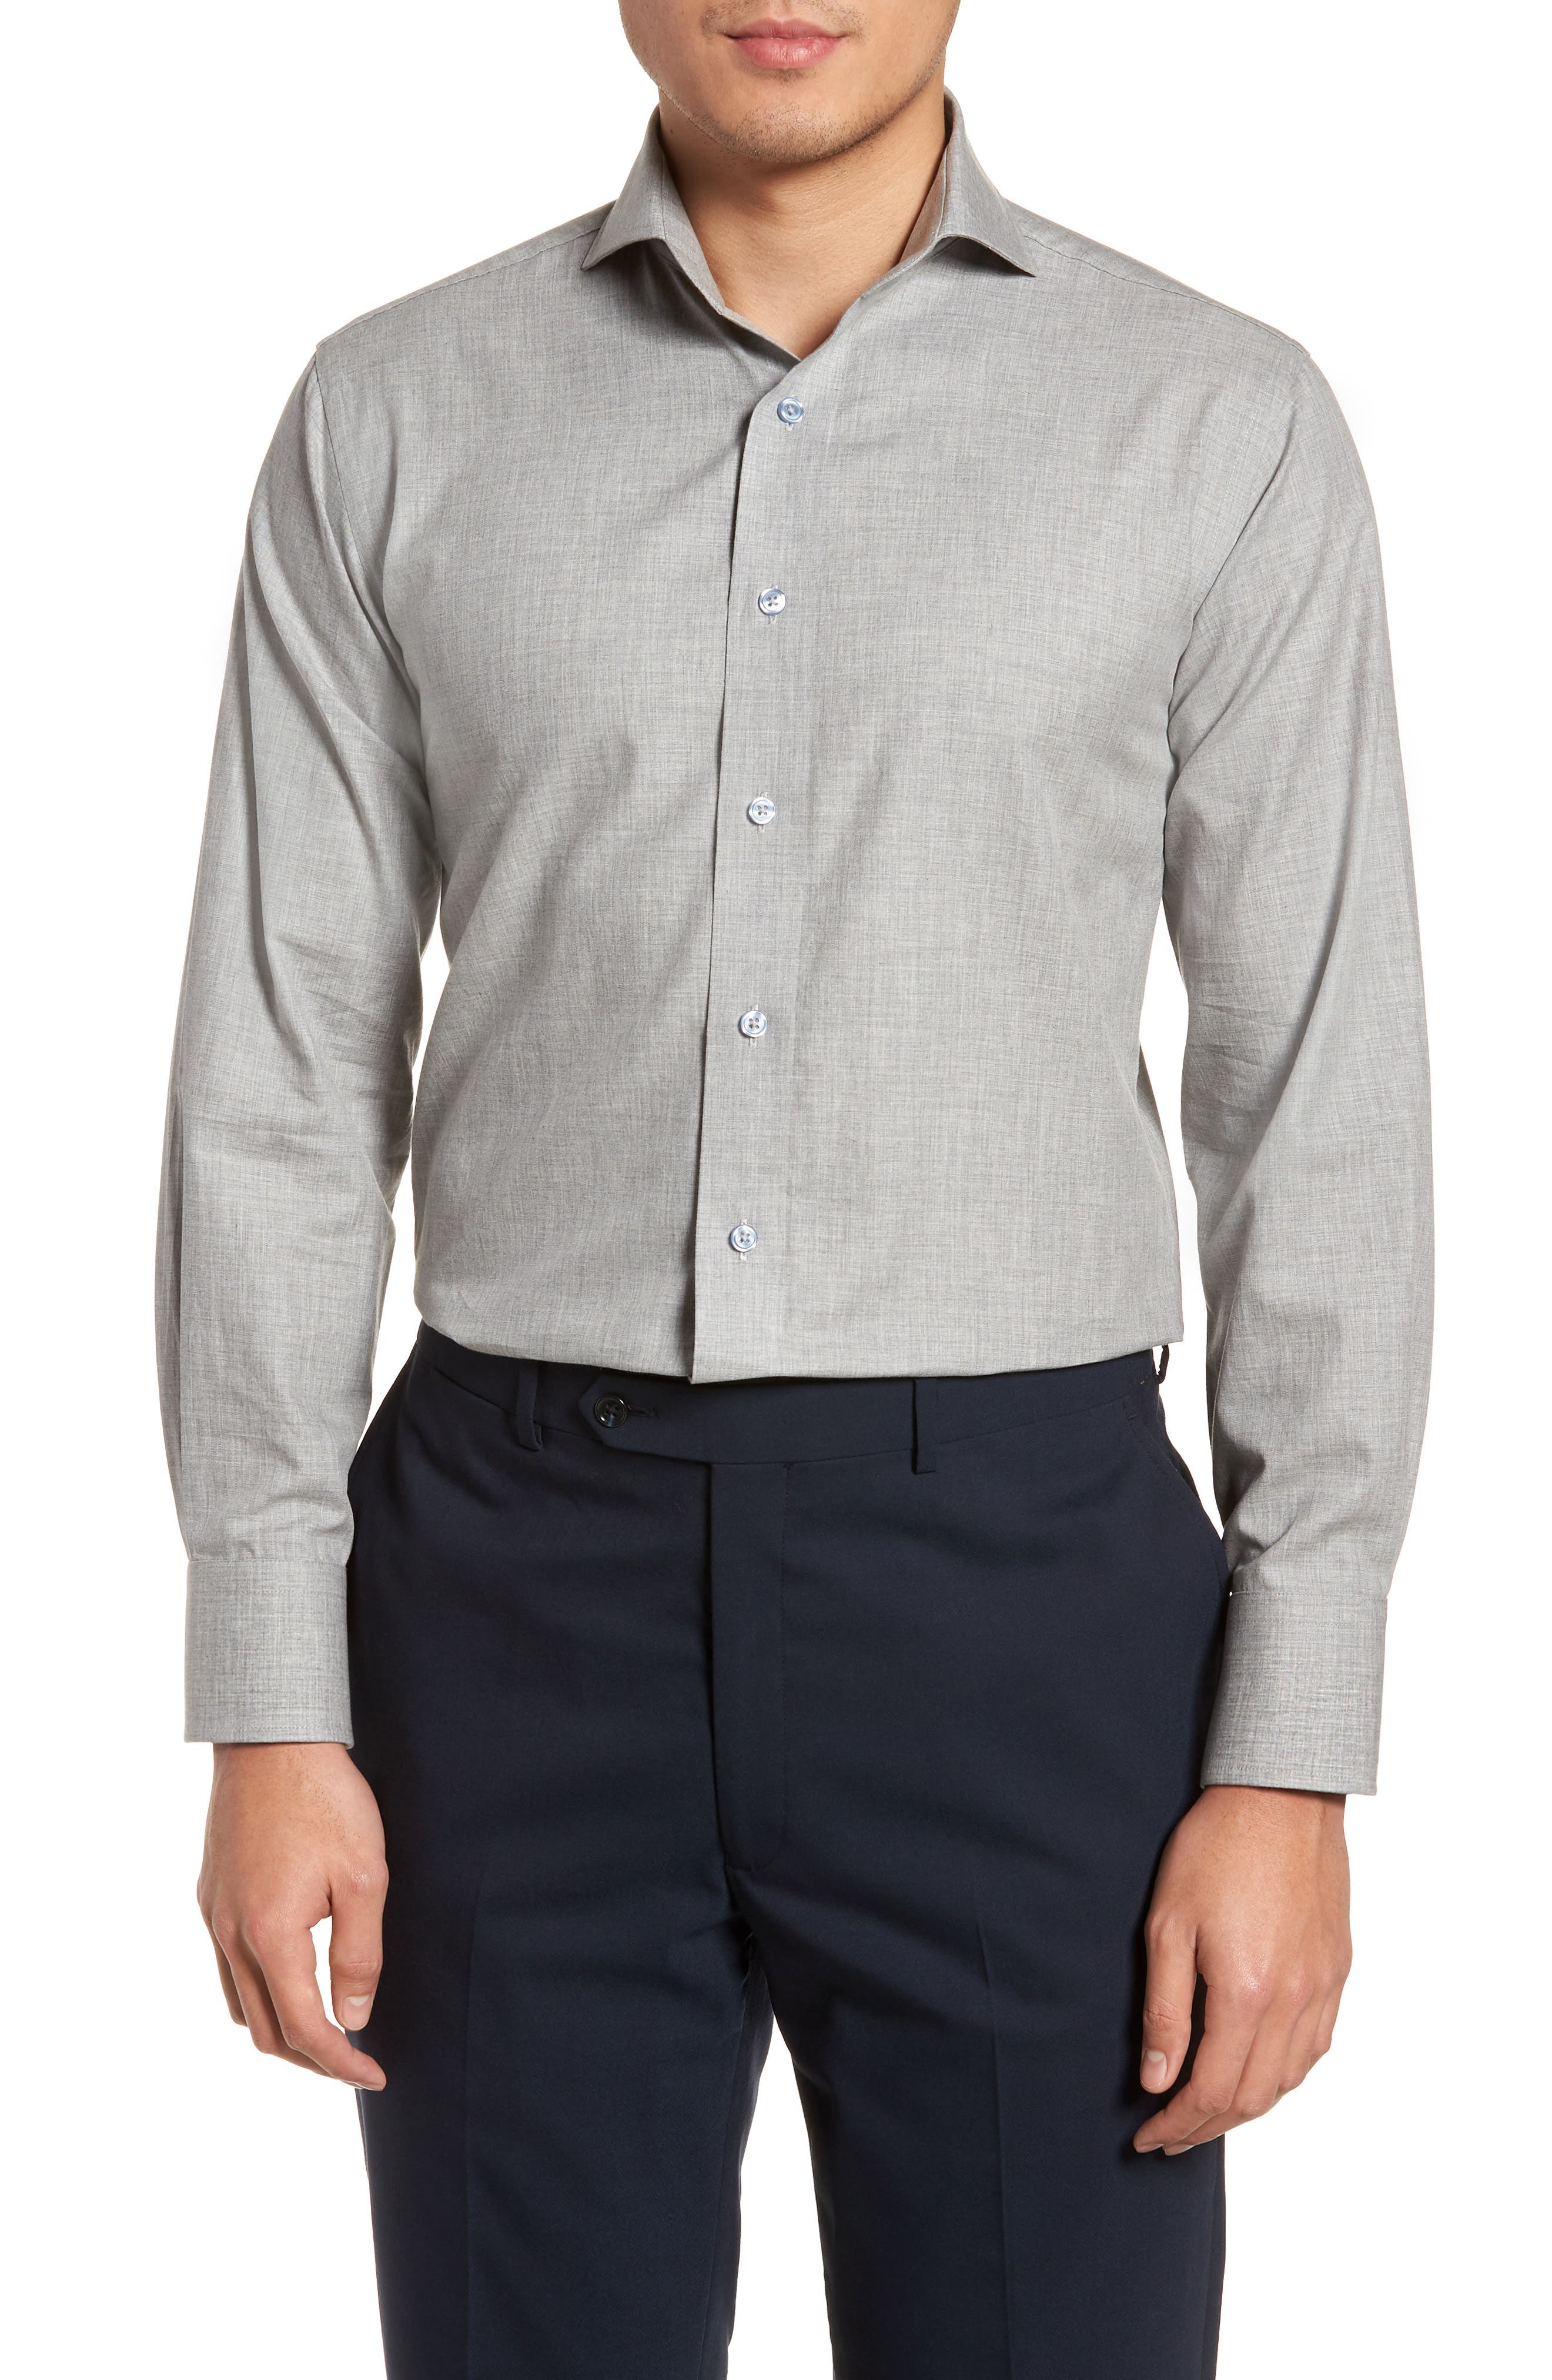 Trim Fit Solid Dress Shirt,                             Main thumbnail 1, color,                             Light Grey